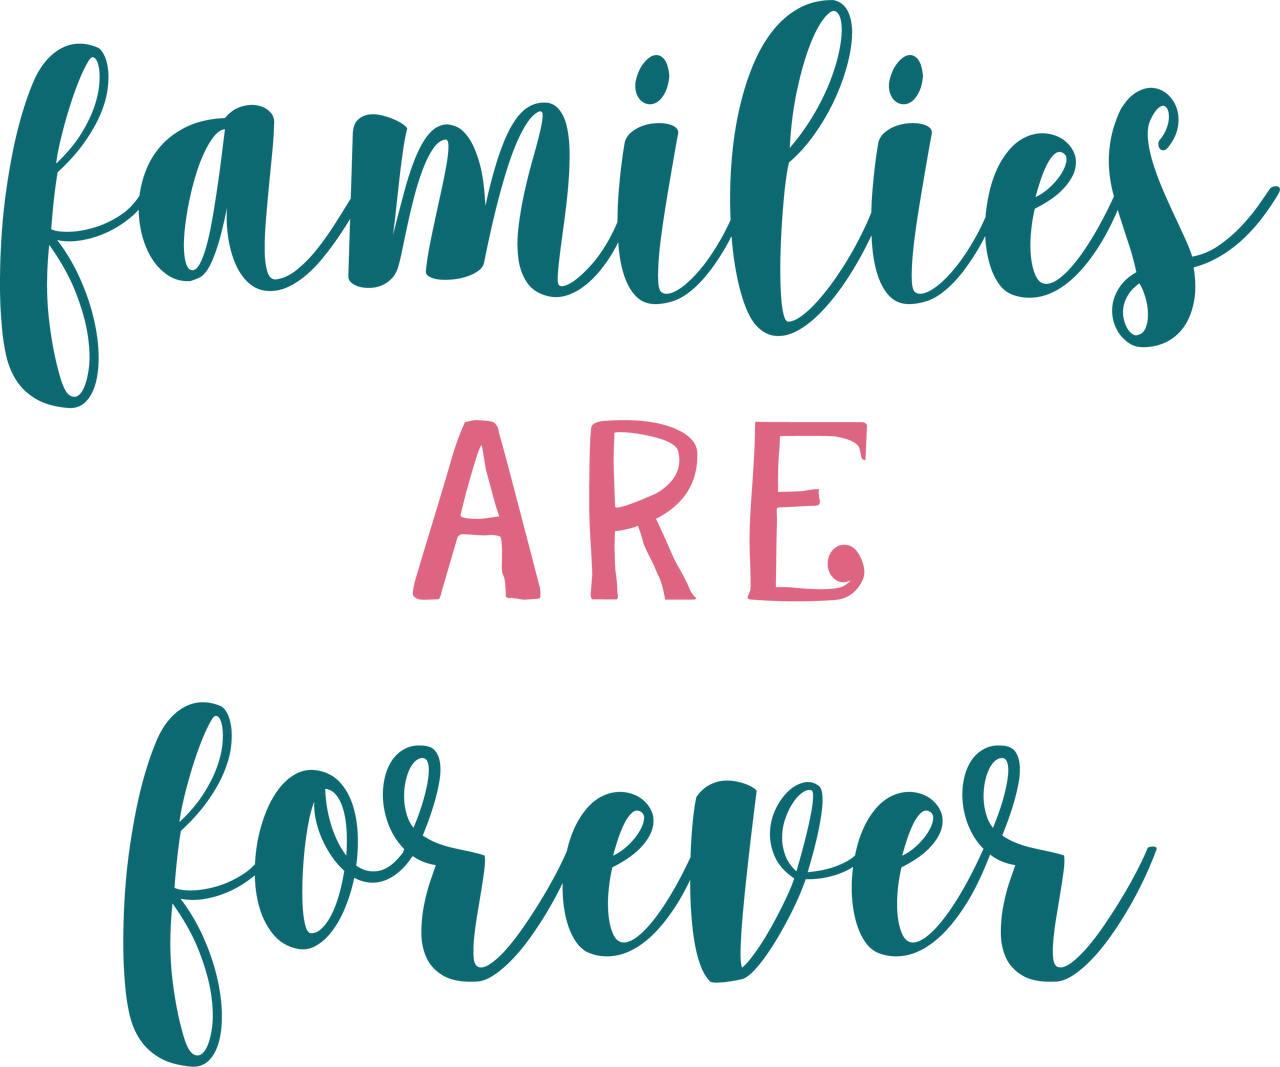 Families Are Forever SVG Cut File